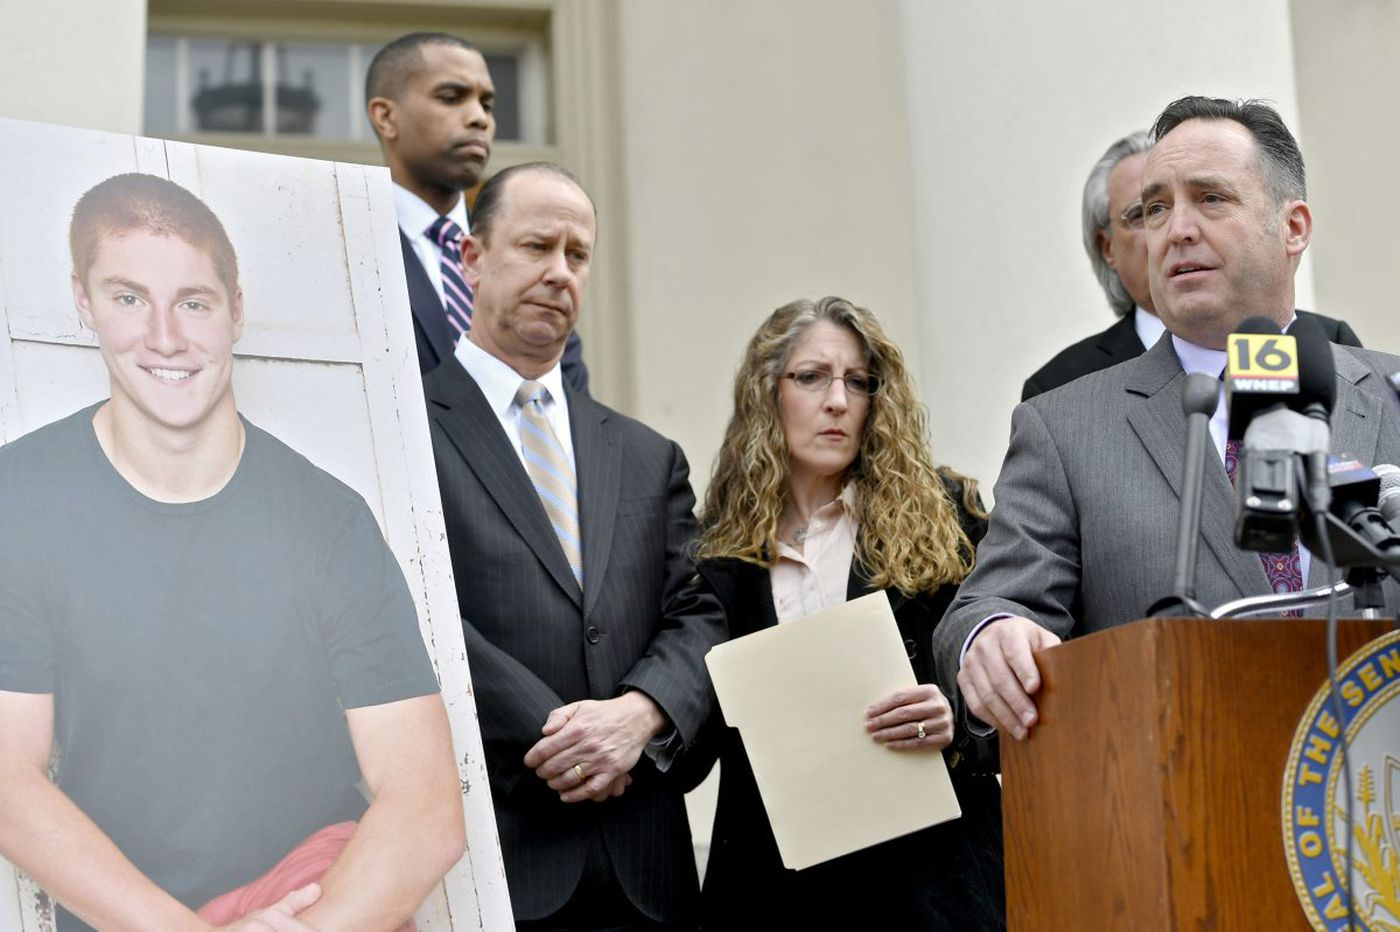 Tougher penalties for hazing likely in Pennsylvania